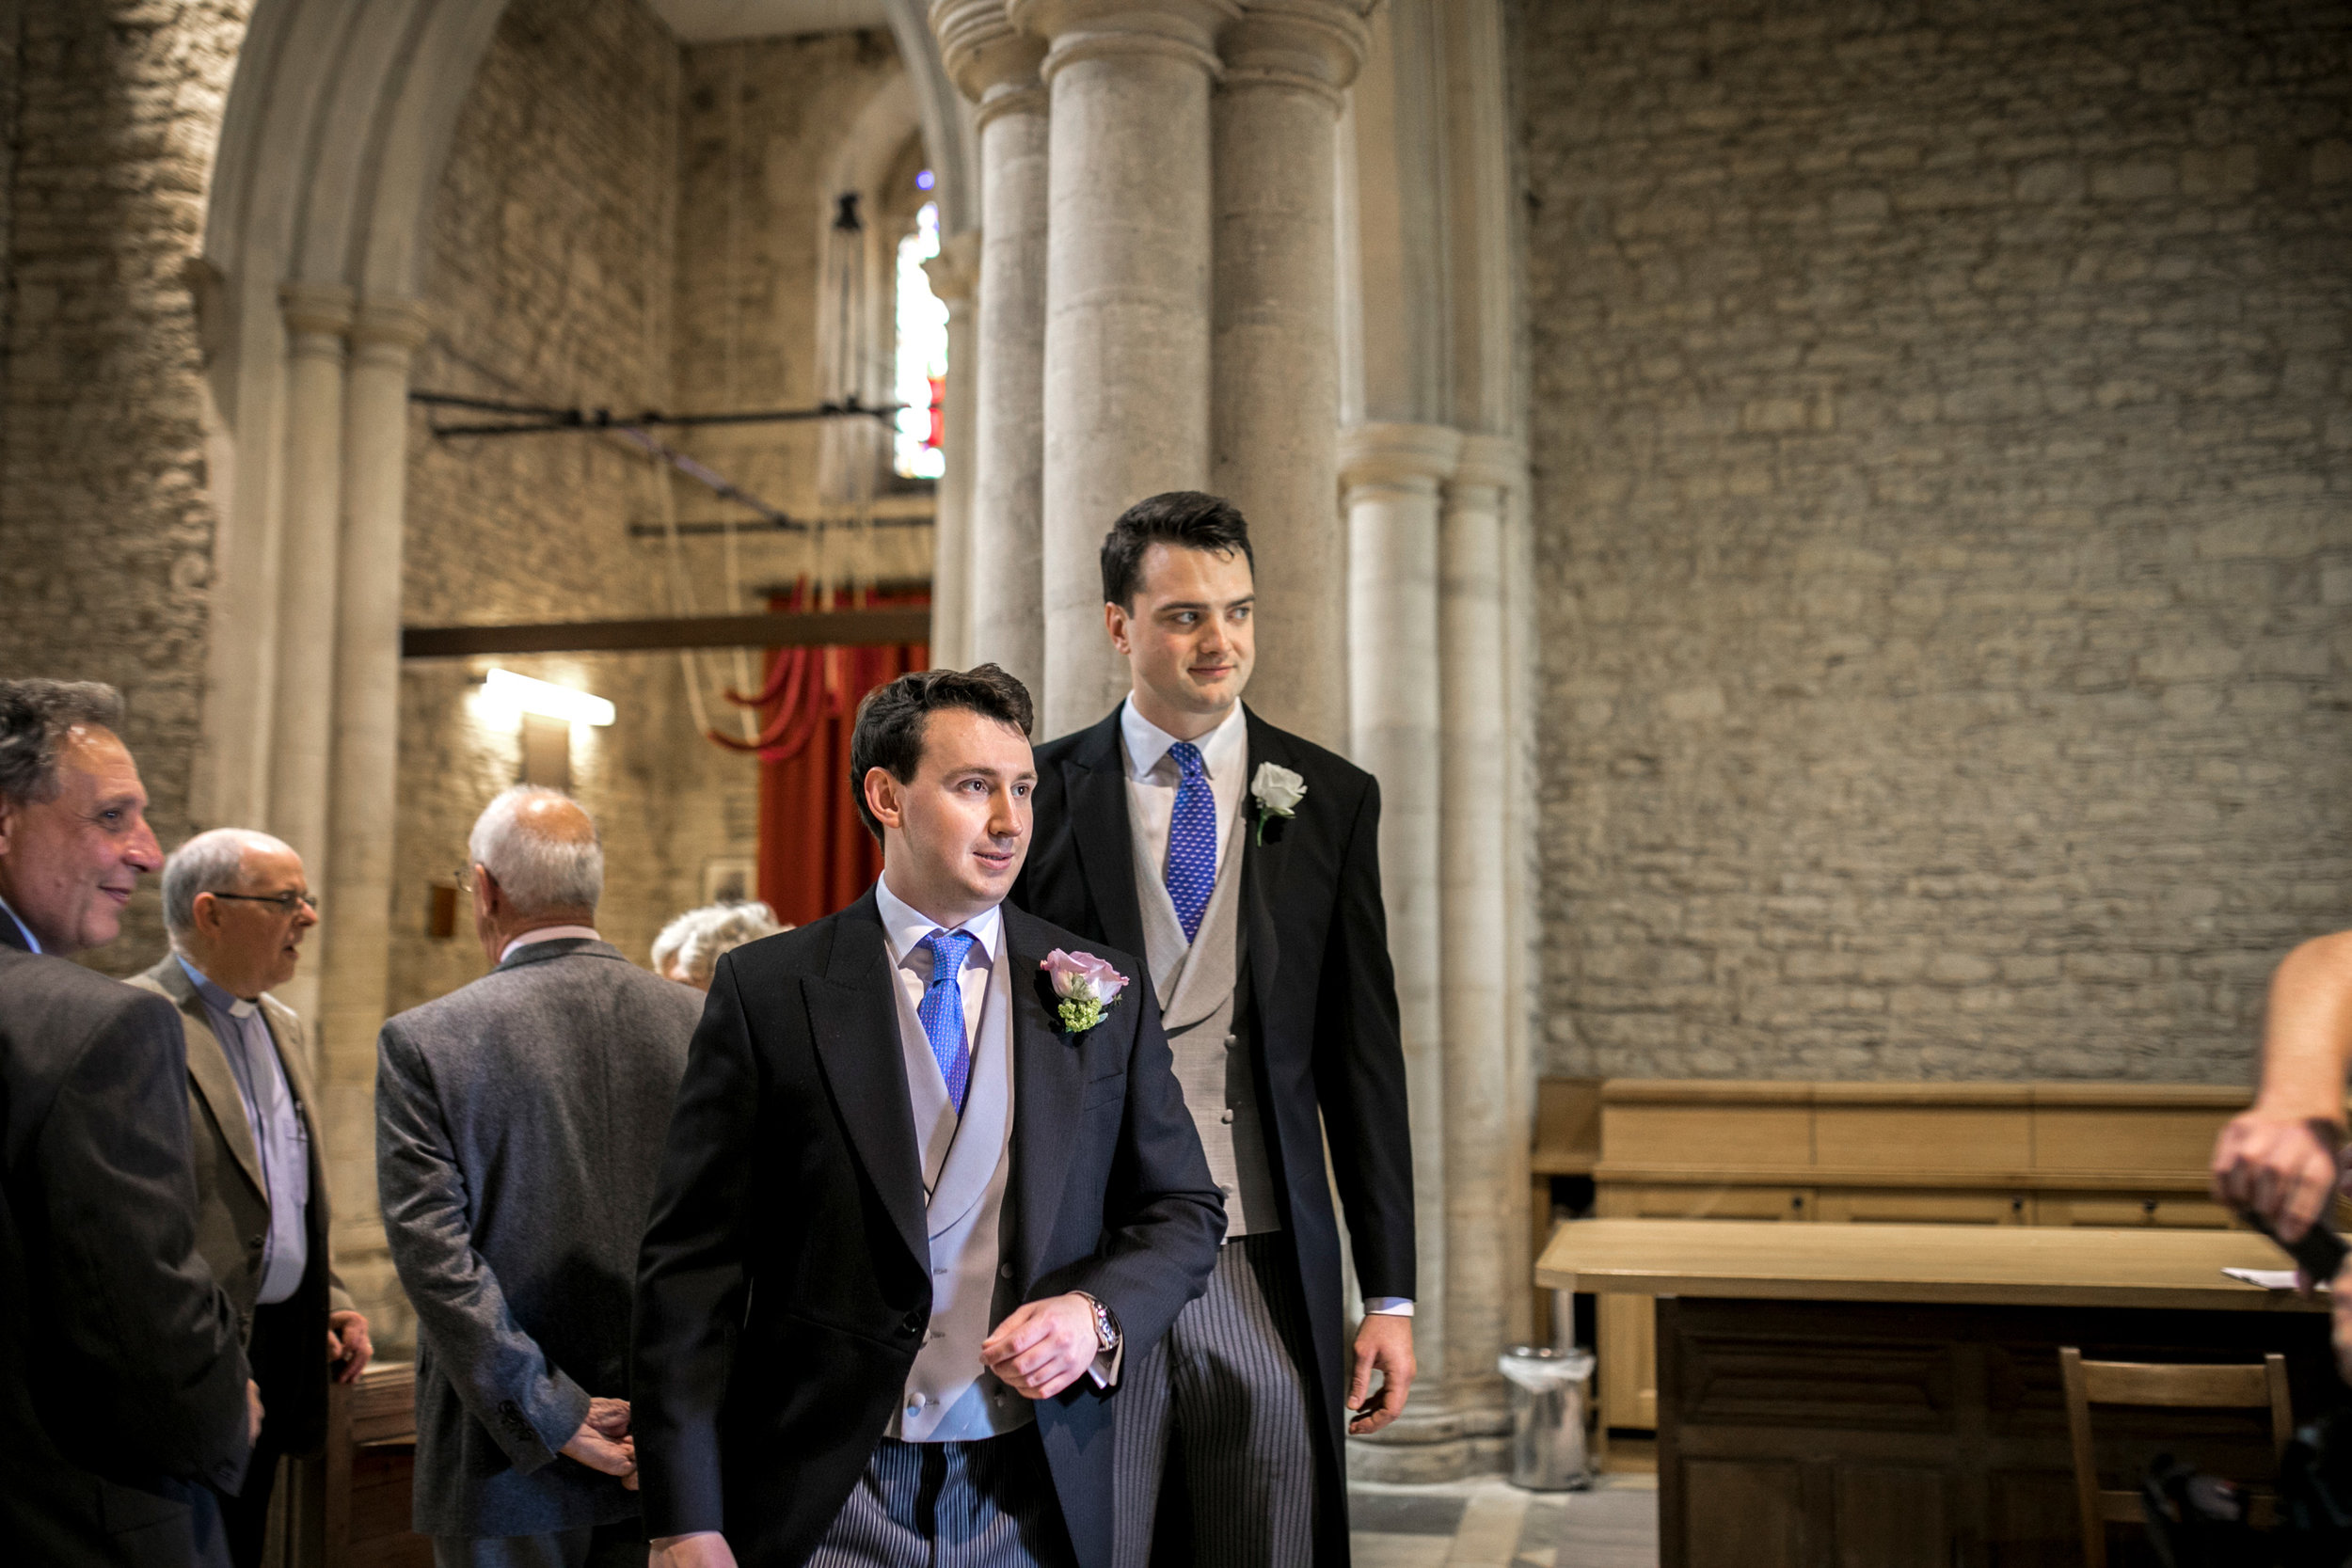 Church Wedding, Grooms Men, Olney Wedding,